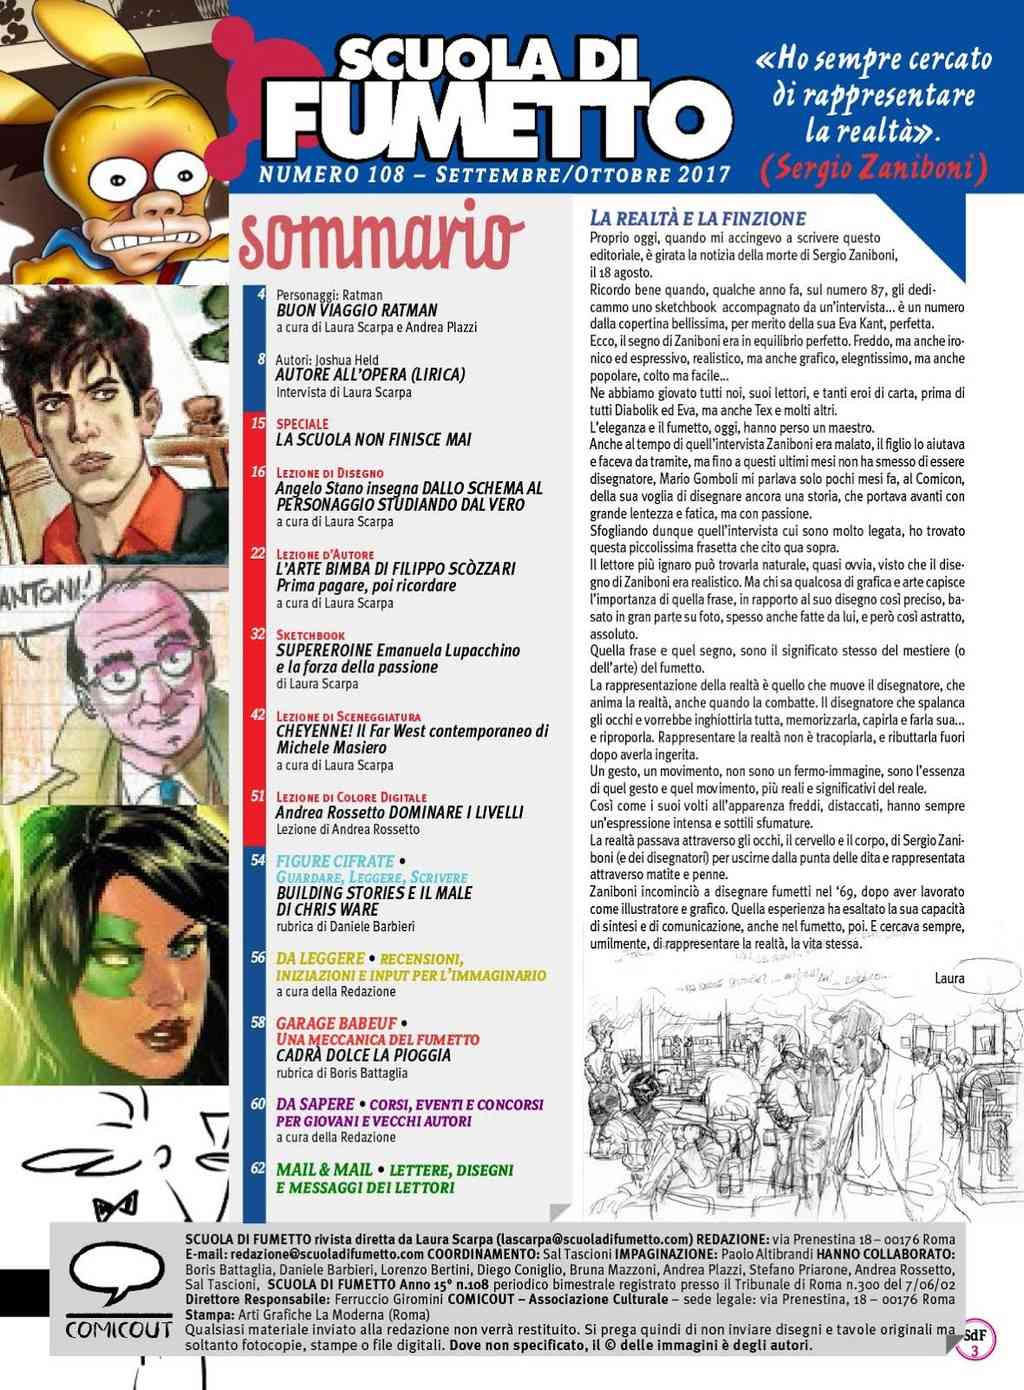 Bandes dessinées italiennes - Page 15 Scuola13